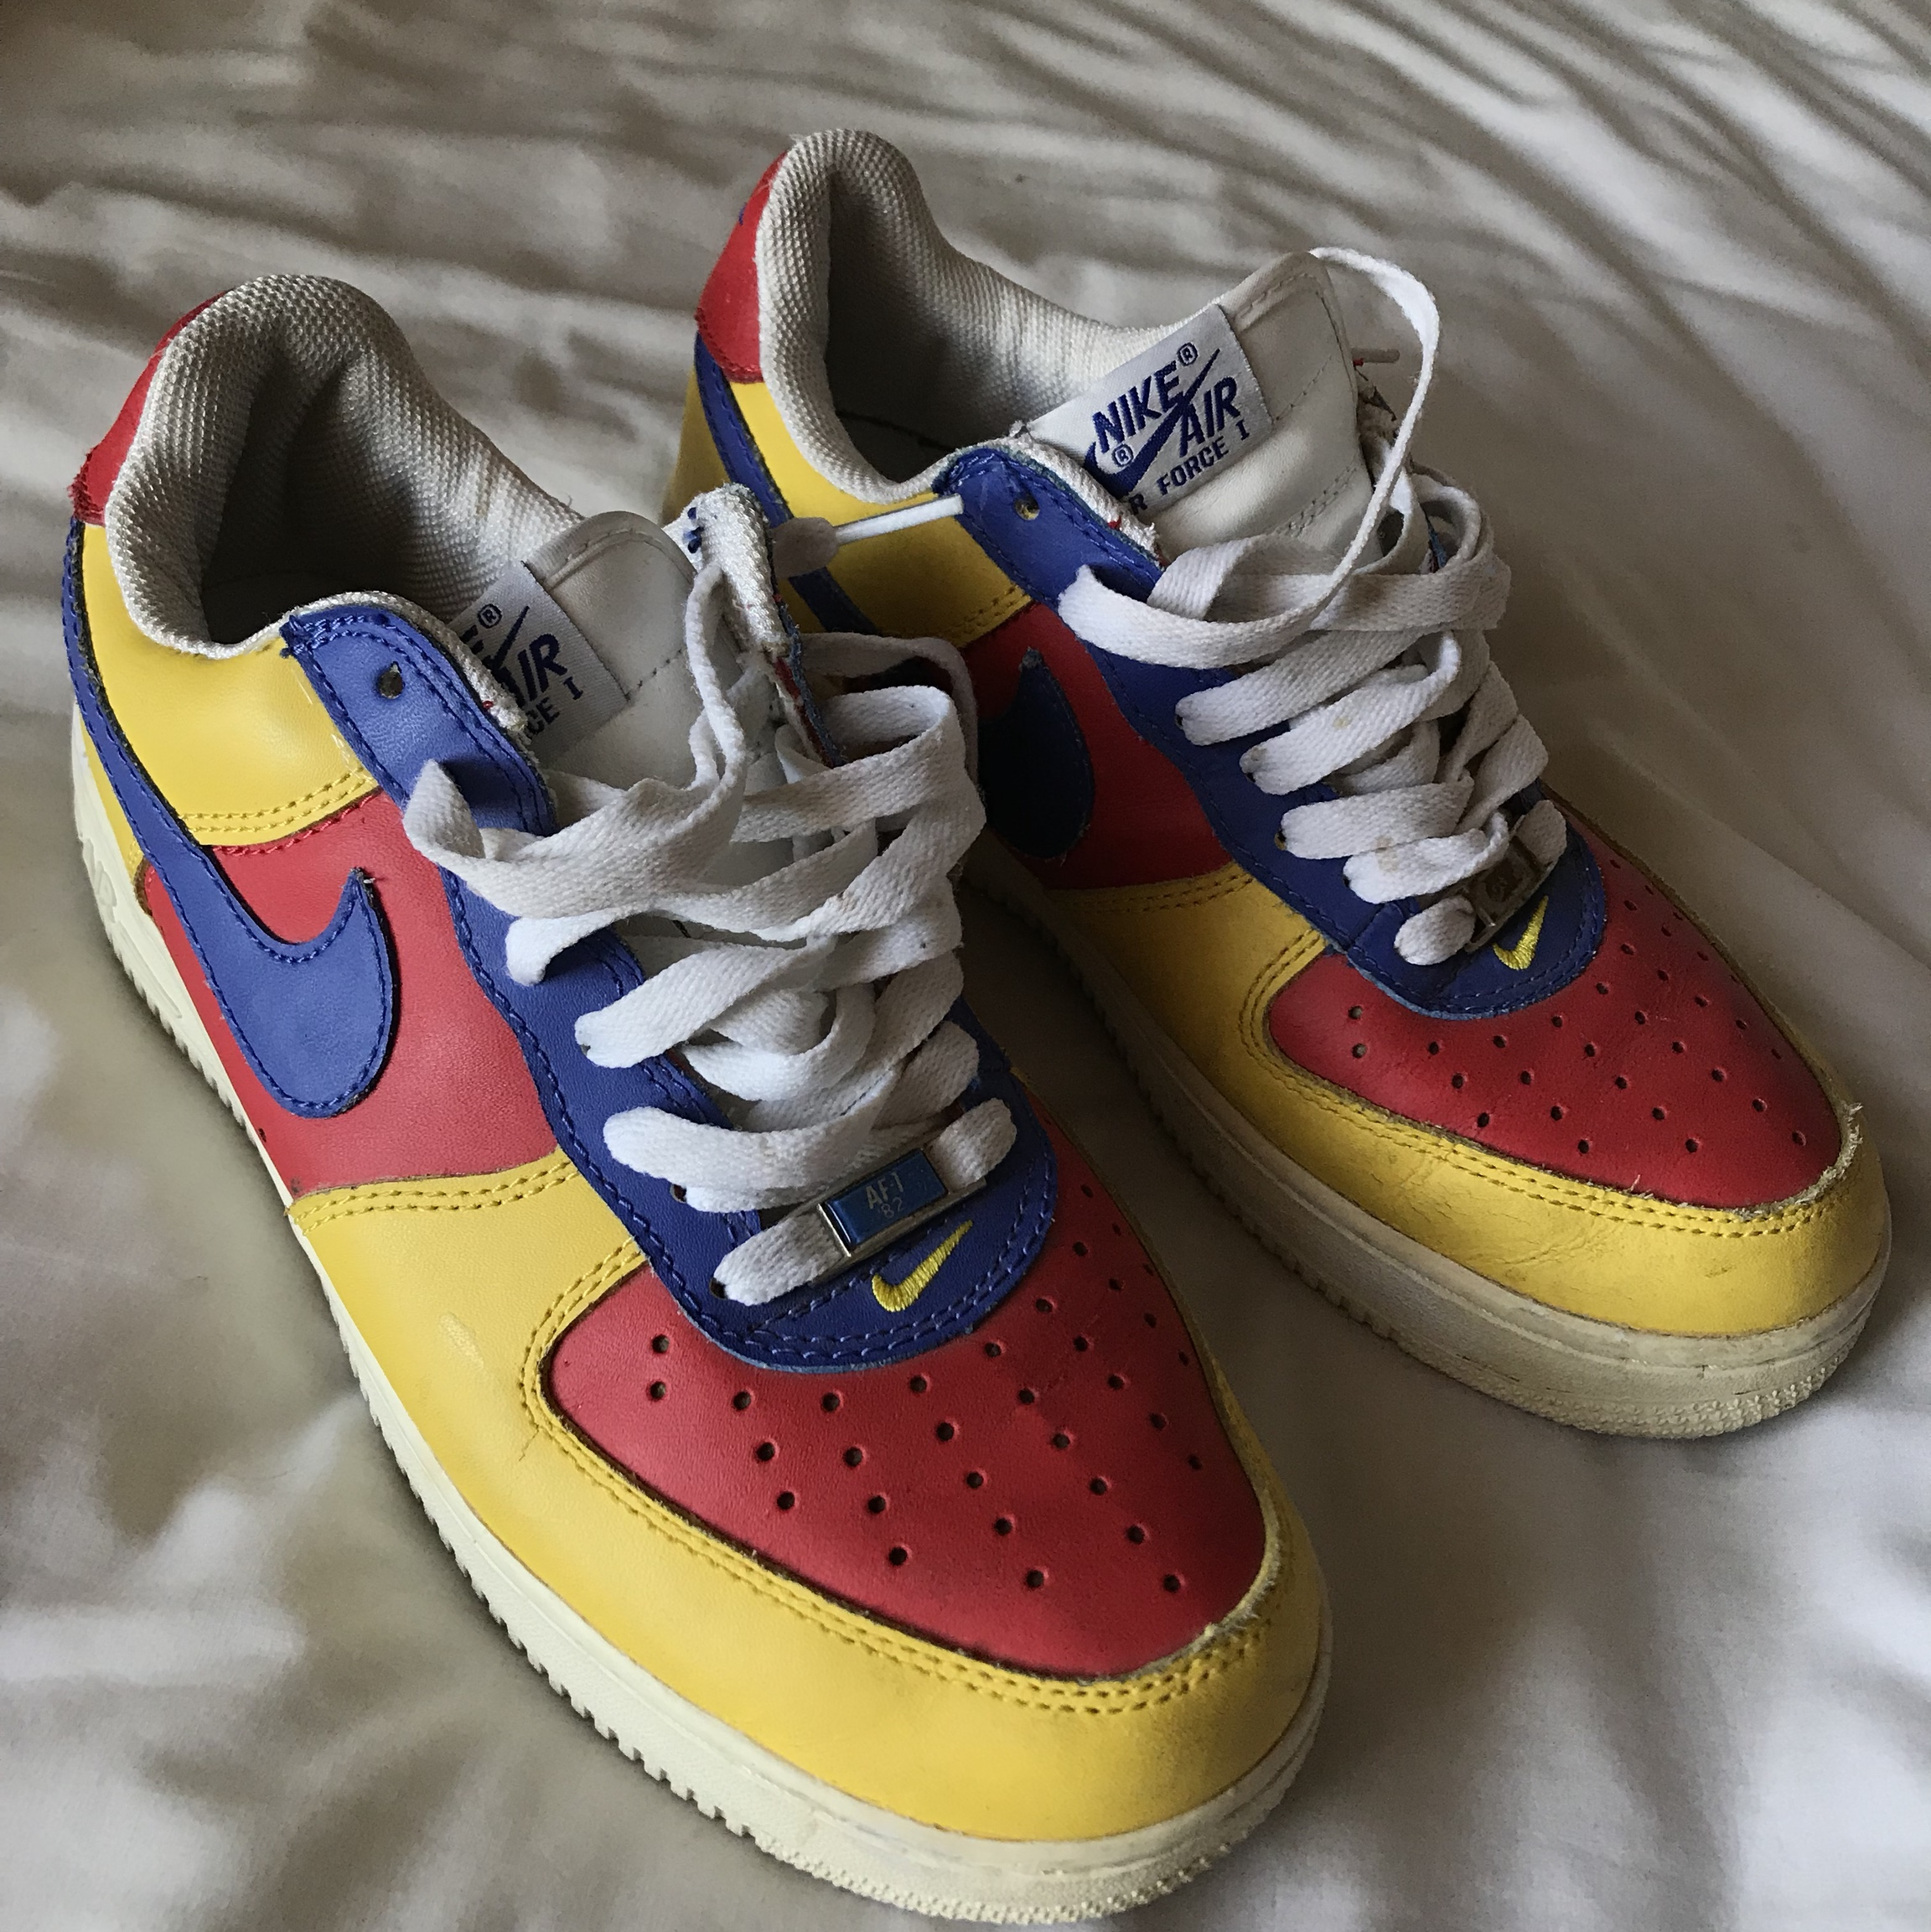 Nike Air Force 1 '82 Blue & Red shoes